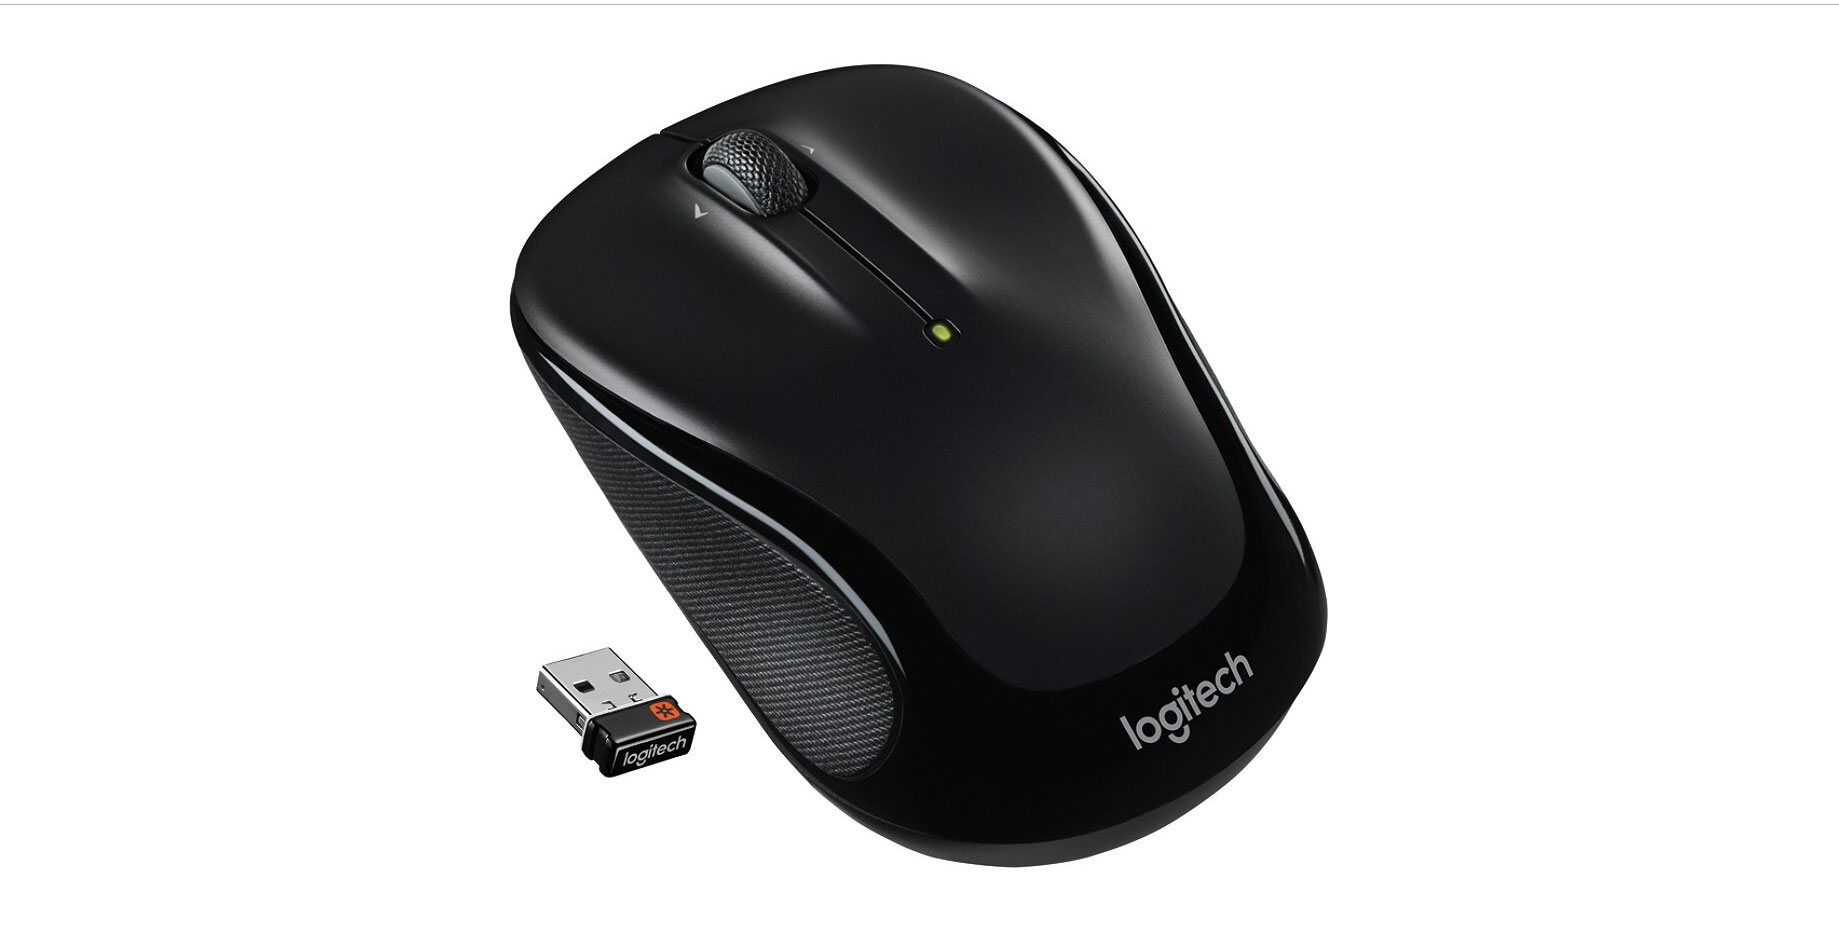 f259f65b2eaa Logitech M325 Wireless Mouse (Multiple Colors) for $9.99 from Office ...